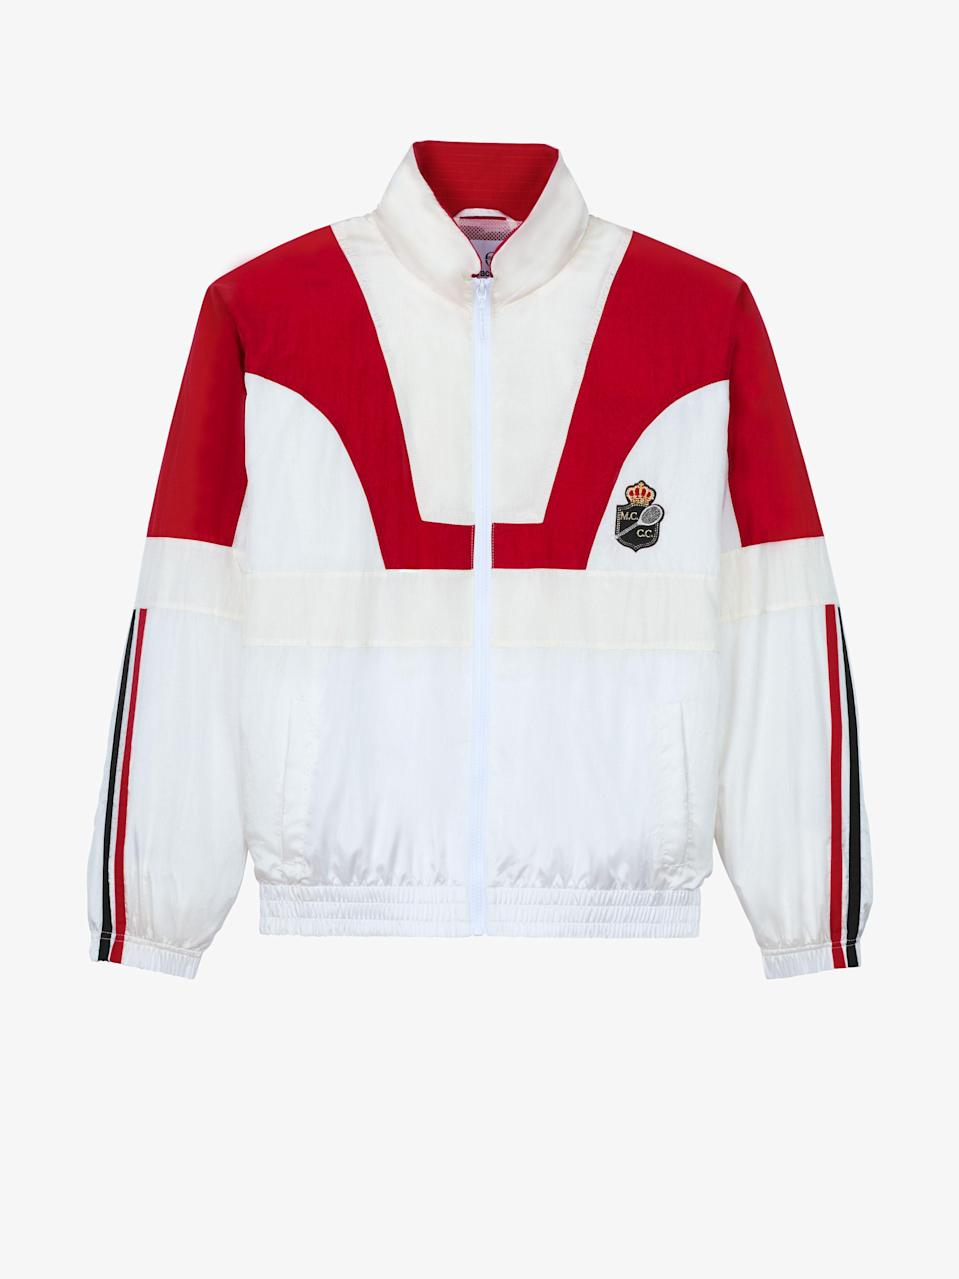 """<p><strong>Sergio Tacchini</strong></p><p>sergiotacchini.com</p><p><strong>$225.00</strong></p><p><a href=""""https://go.skimresources.com?id=74968X1525079&xs=1&url=https%3A%2F%2Fwww.sergiotacchini.com%2Fcollections%2Fmonte-carlo-collection-1%2Fproducts%2Frainier-tracksuit-blanc-de-blanc-tango-red"""" rel=""""nofollow noopener"""" target=""""_blank"""" data-ylk=""""slk:Shop Now"""" class=""""link rapid-noclick-resp"""">Shop Now</a></p><p>If the dad in your life is a fan of athleisure, he'll love Sergio Tacchini's two-piece tracksuit. Part of the brand's Monte Carlo Collection, the set's color-block design gives it a distinct retro feel. </p>"""